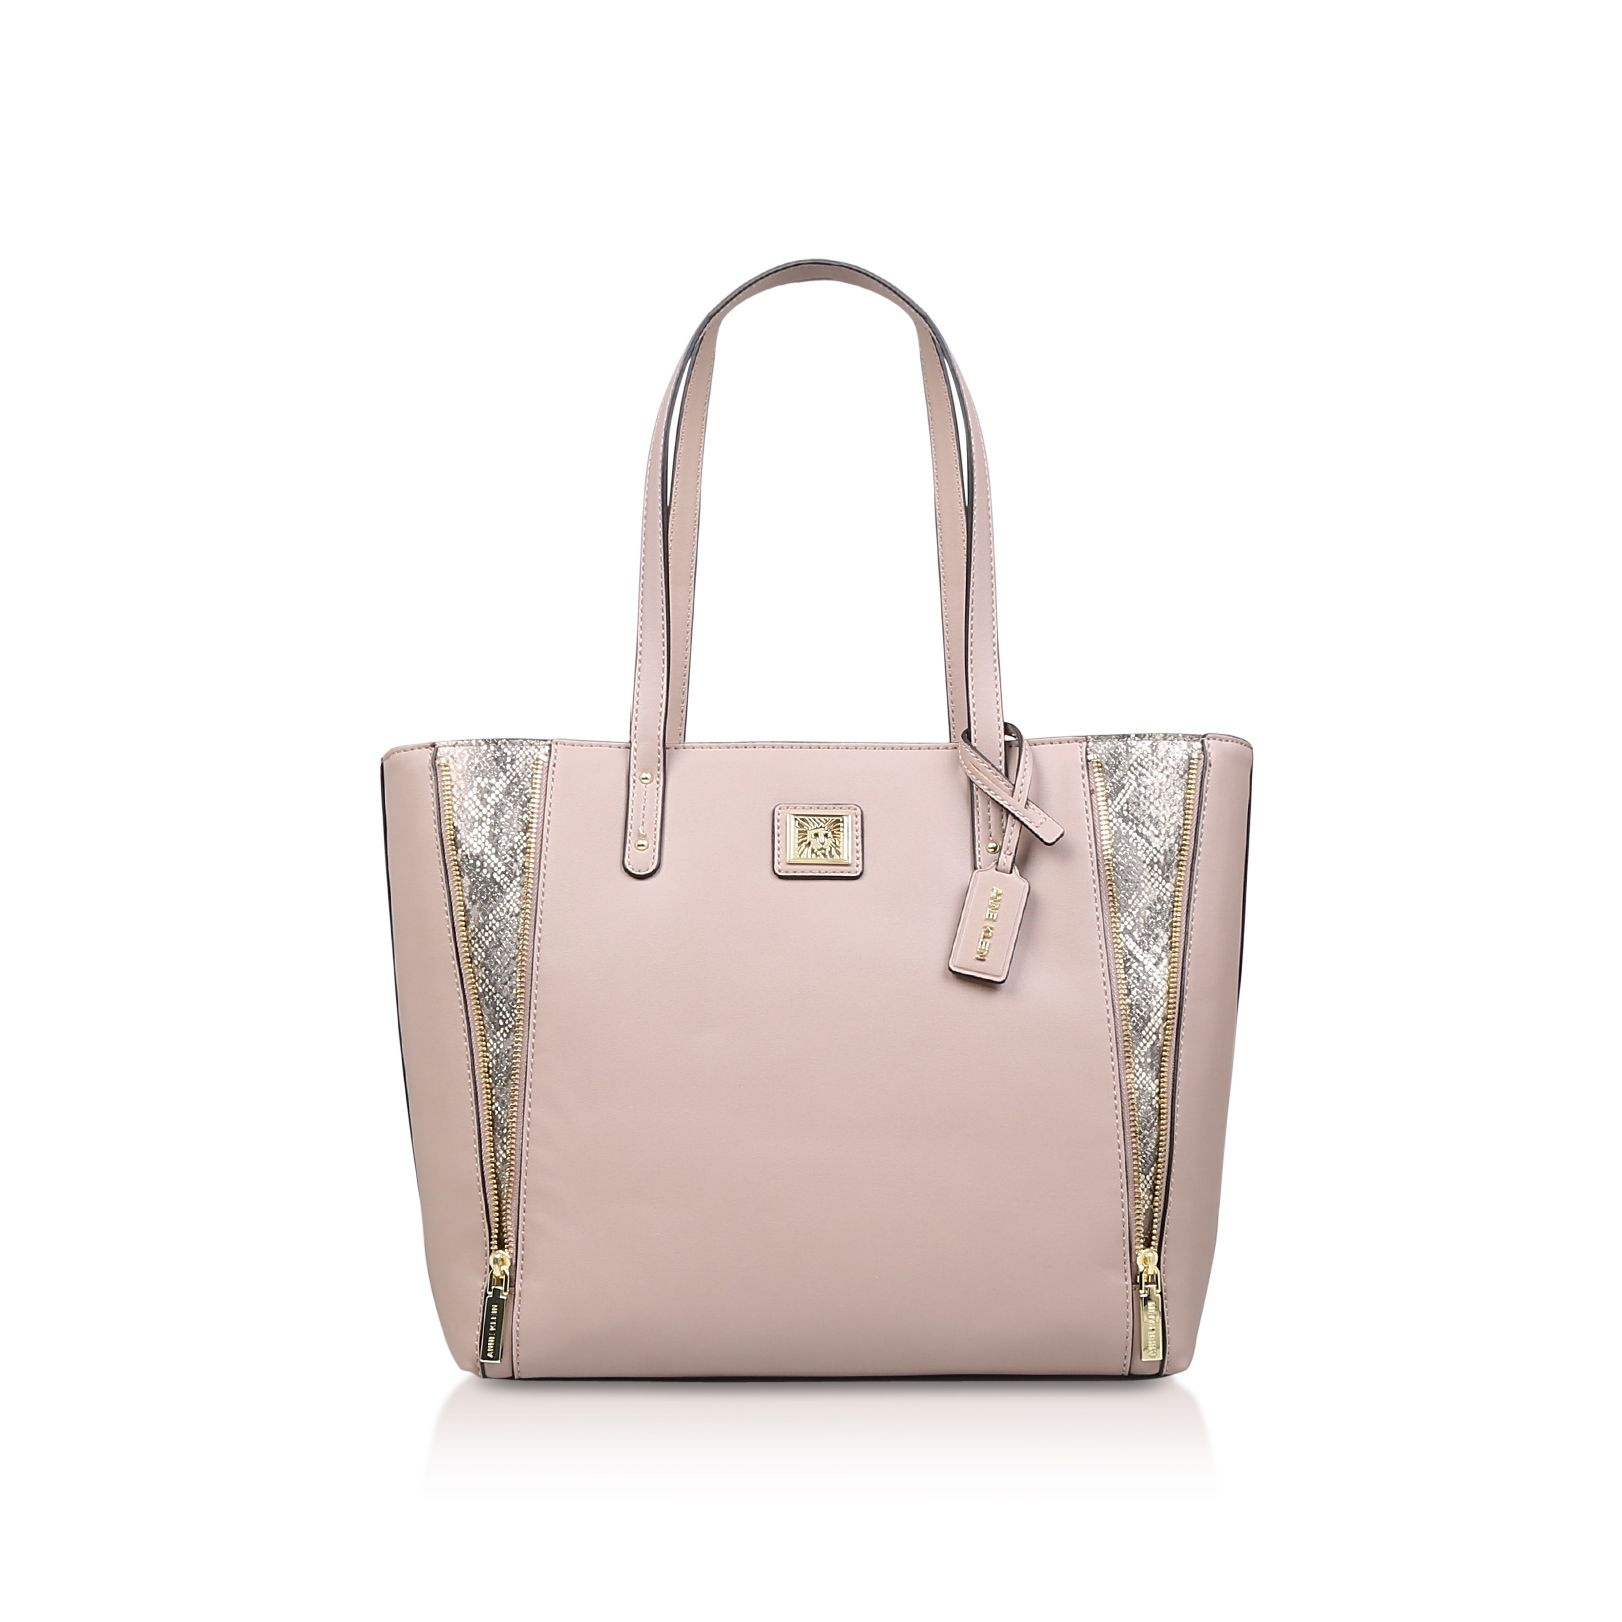 Anne Klein Limitless Tote Tote Bags, Nude